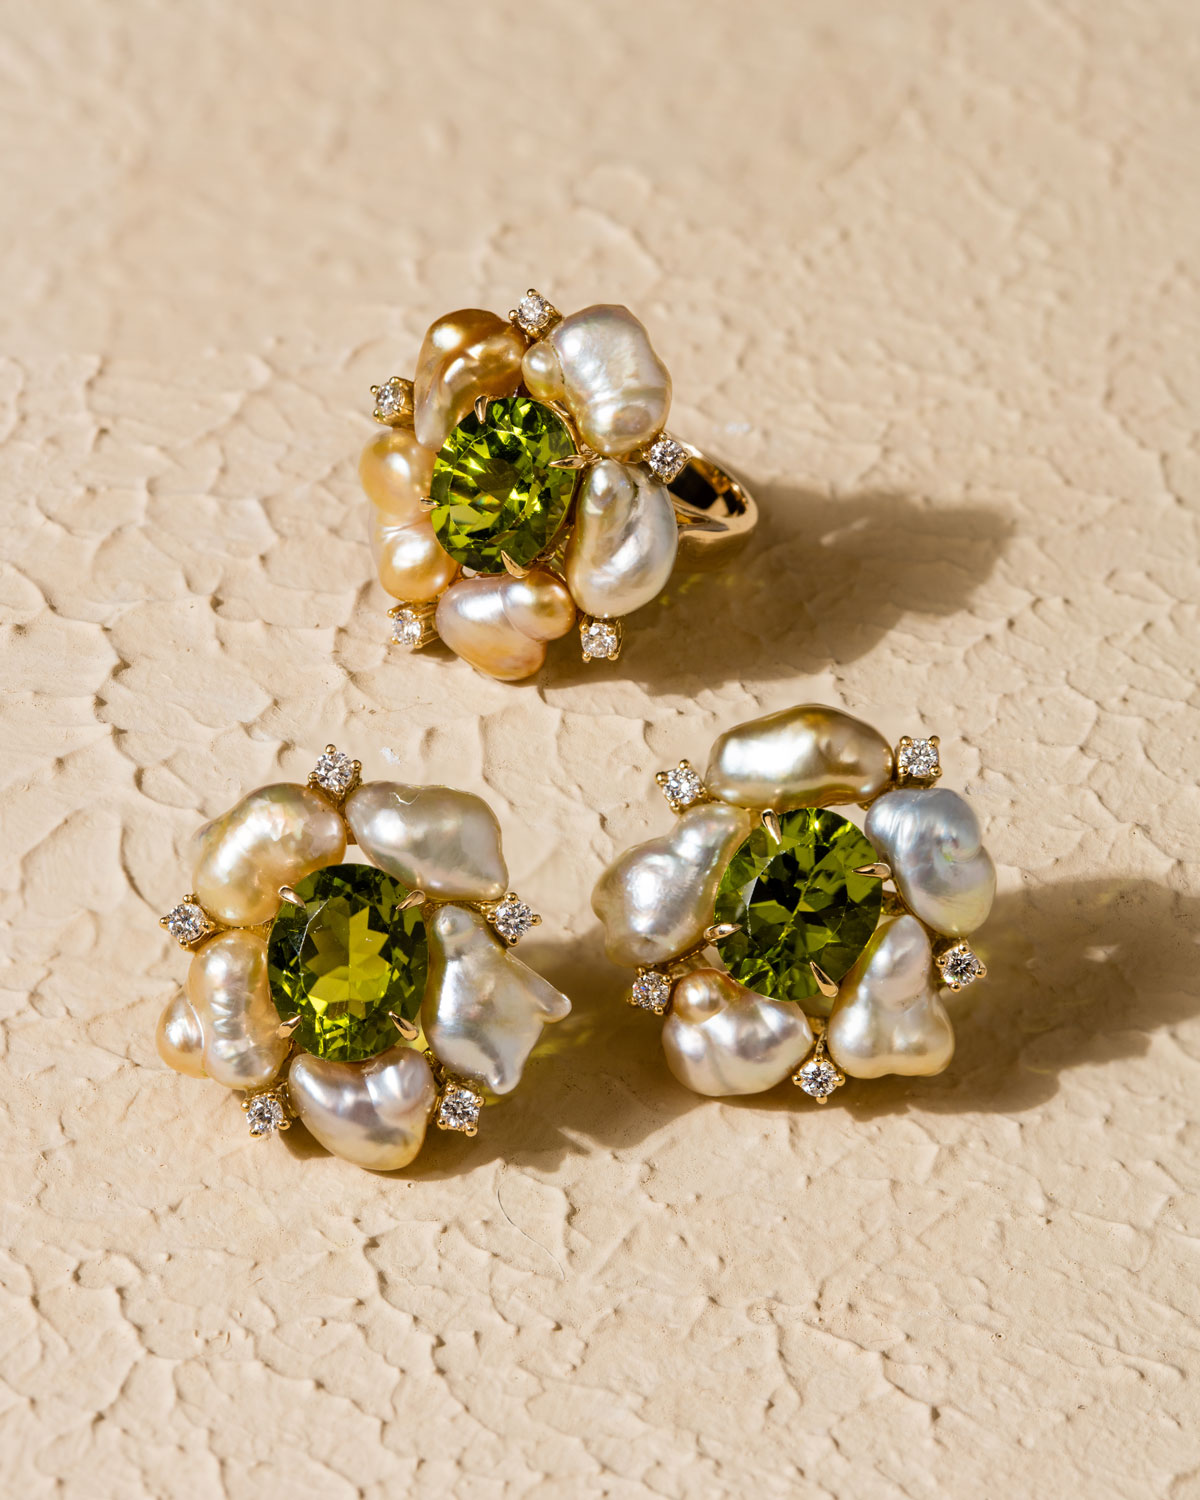 webPaul-Syjuco-ring-and-earrings-of-olivine-peridot-champagne-keshi-and-diamonds-in-gold